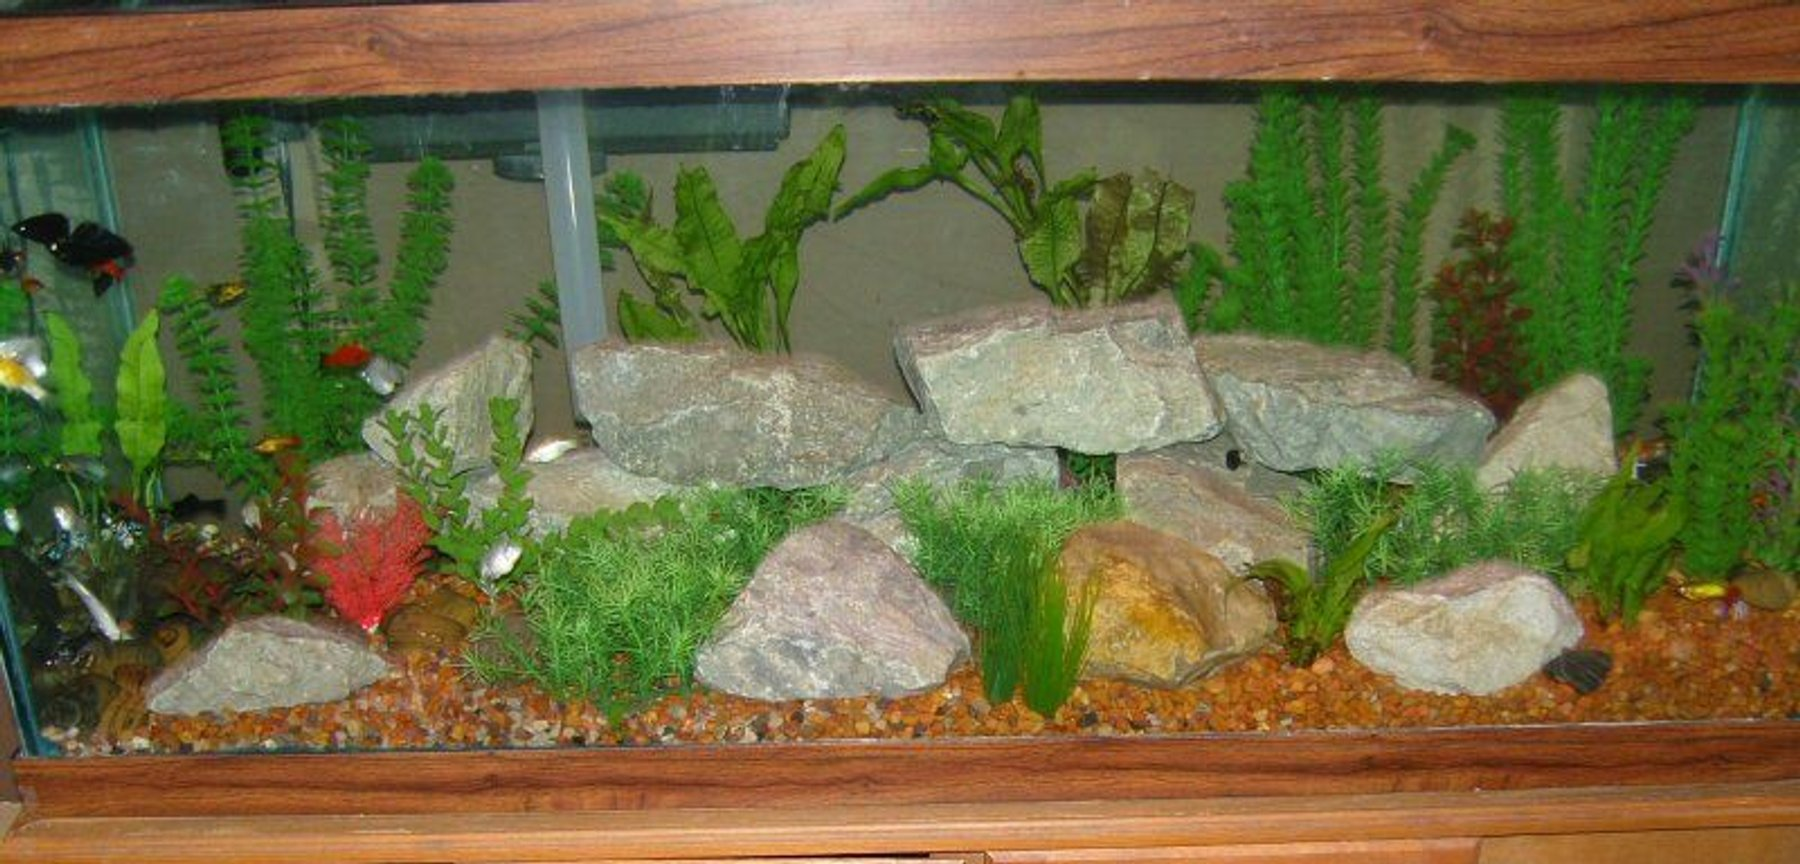 75 gallons freshwater fish tank (mostly fish and non-living decorations) - 75 gallon tank Mollies Swordtails Variatus